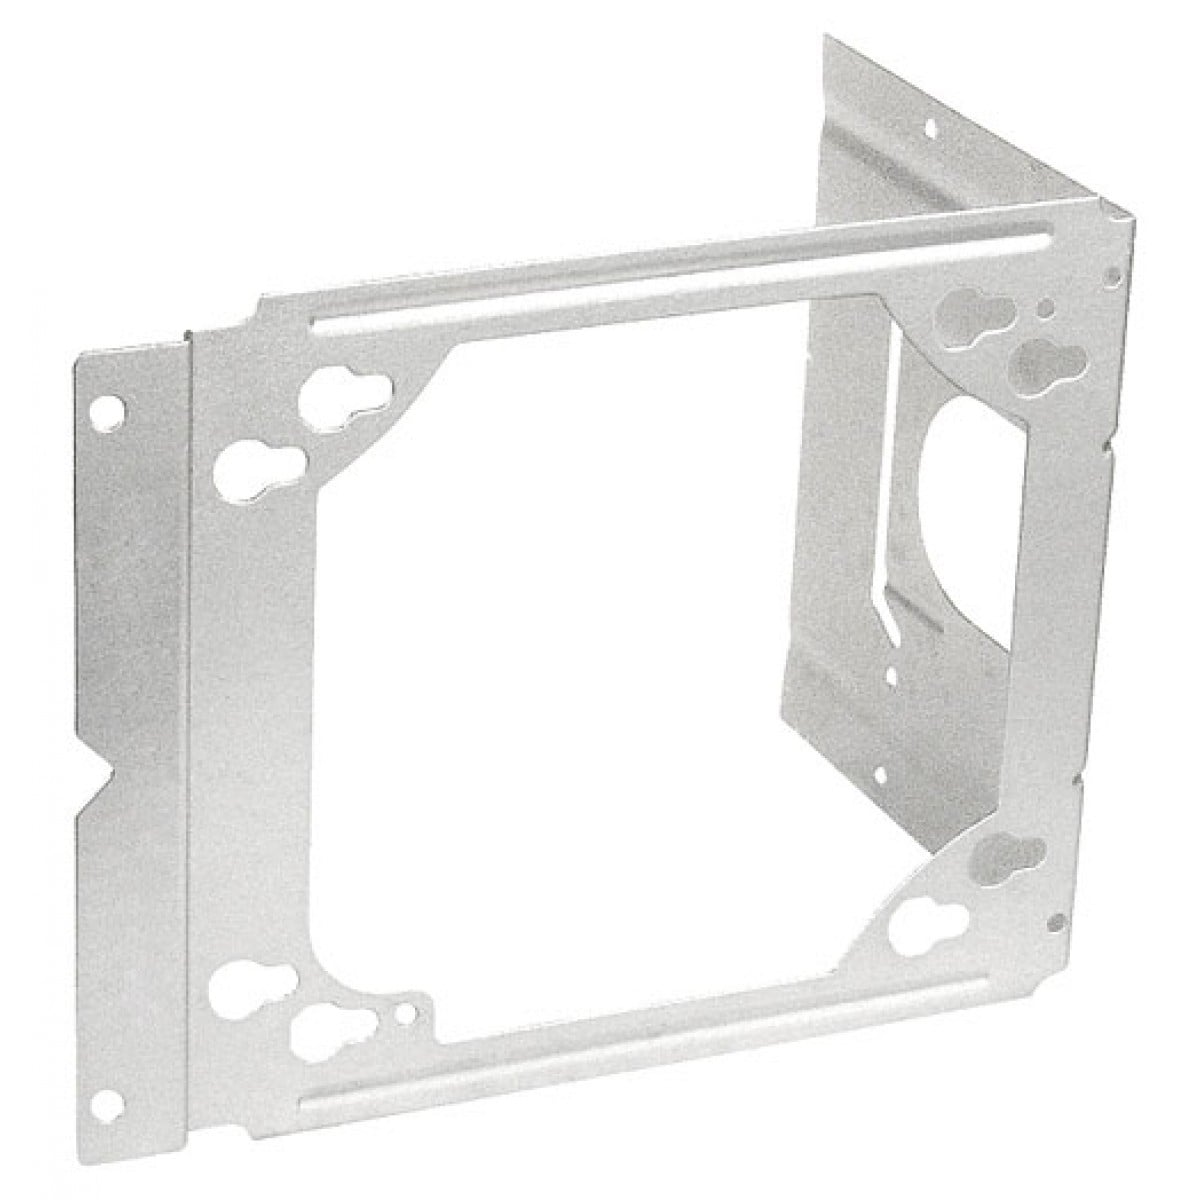 10 Pcs, Universal Box Mounting Bracket, 2-1/2 or 3-5/8 in. Stud Wall Depth, Zinc Plated Steel